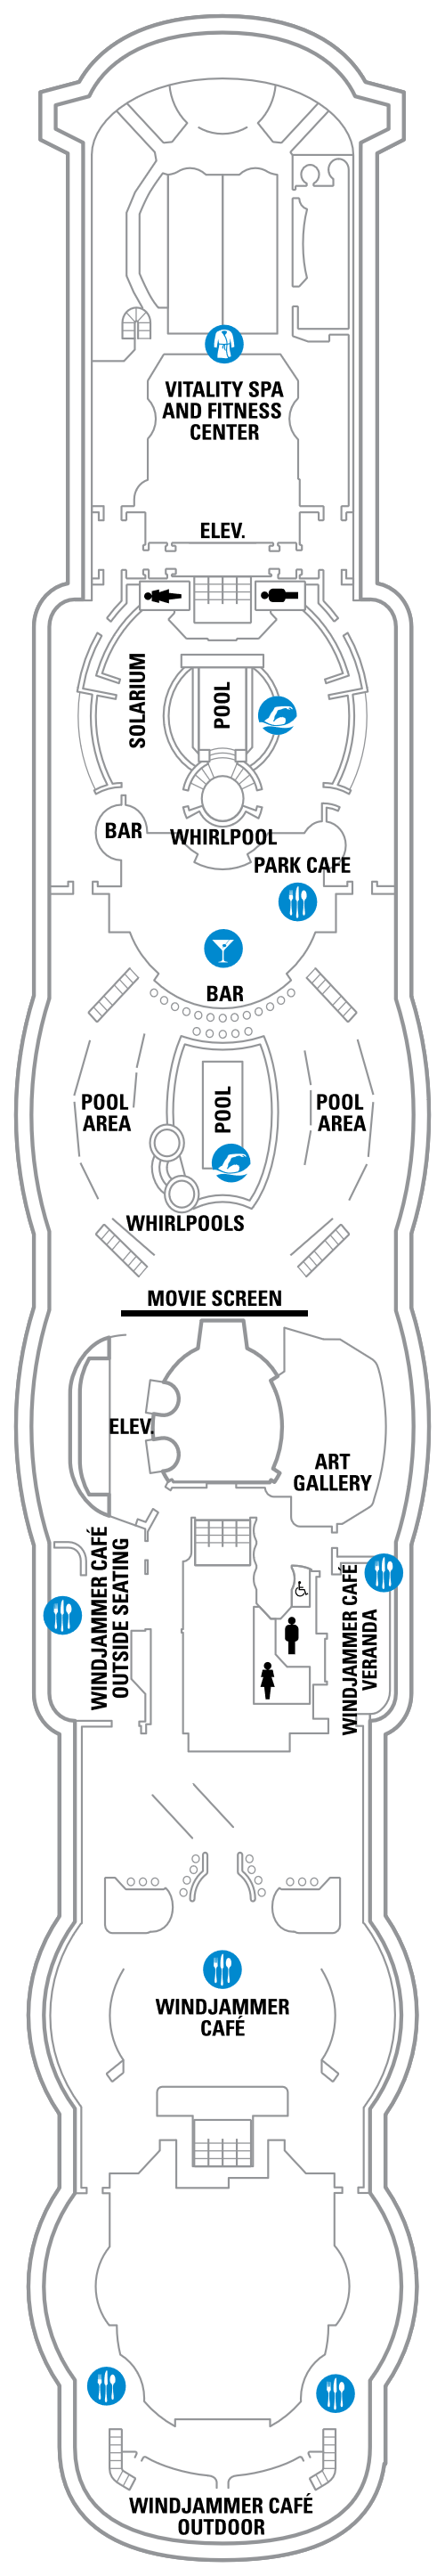 Serenade Of The Seas Deck 11 layout